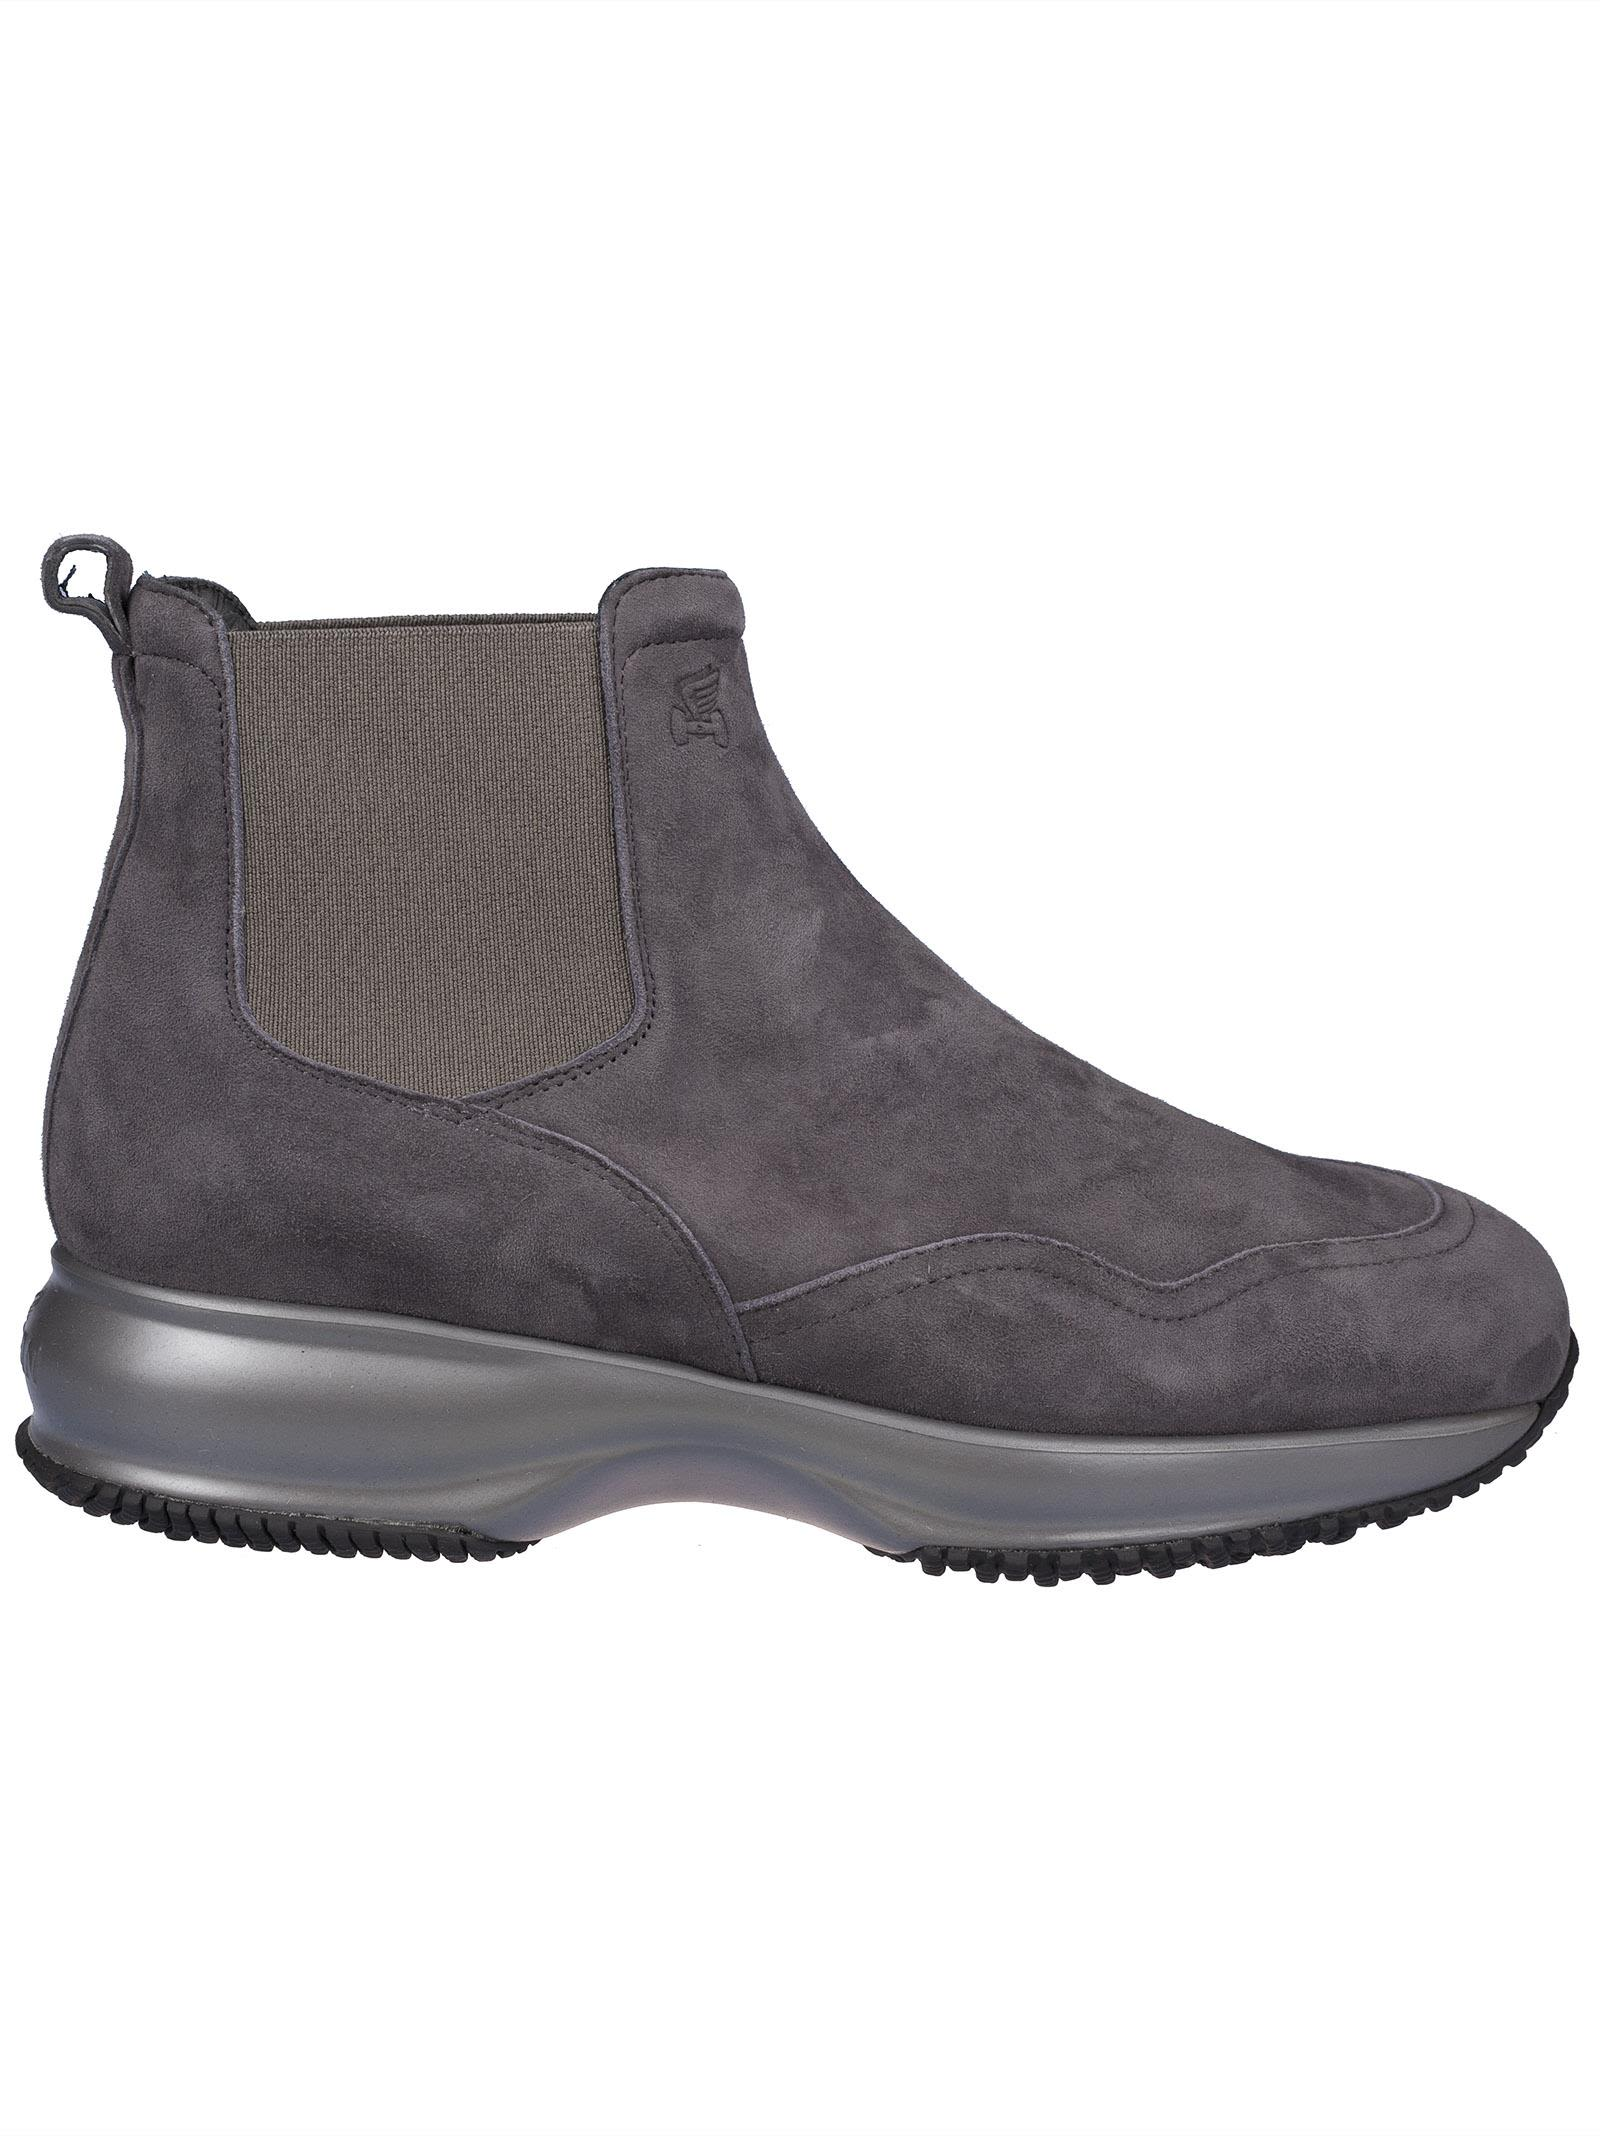 ELASTICATED SIDE PANELS ANKLE BOOTS